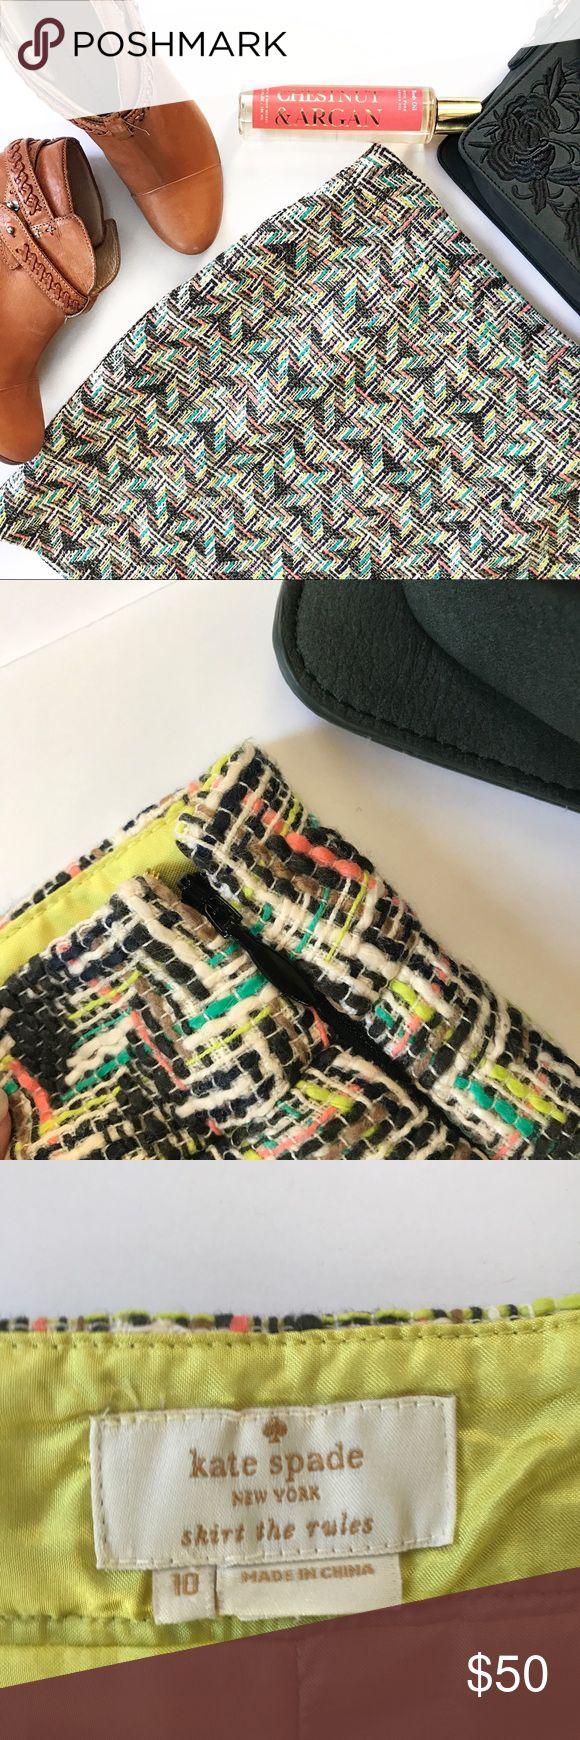 "Kate Spade | Summer Tweed Harper Skirt Tweed skirt Cut to a slight A-line  Multicolored  Lined  Side zip closure  Slight stain on lining  100% cotton Hip 32"" Waist 38"" Length 17"" kate spade Skirts Mini"